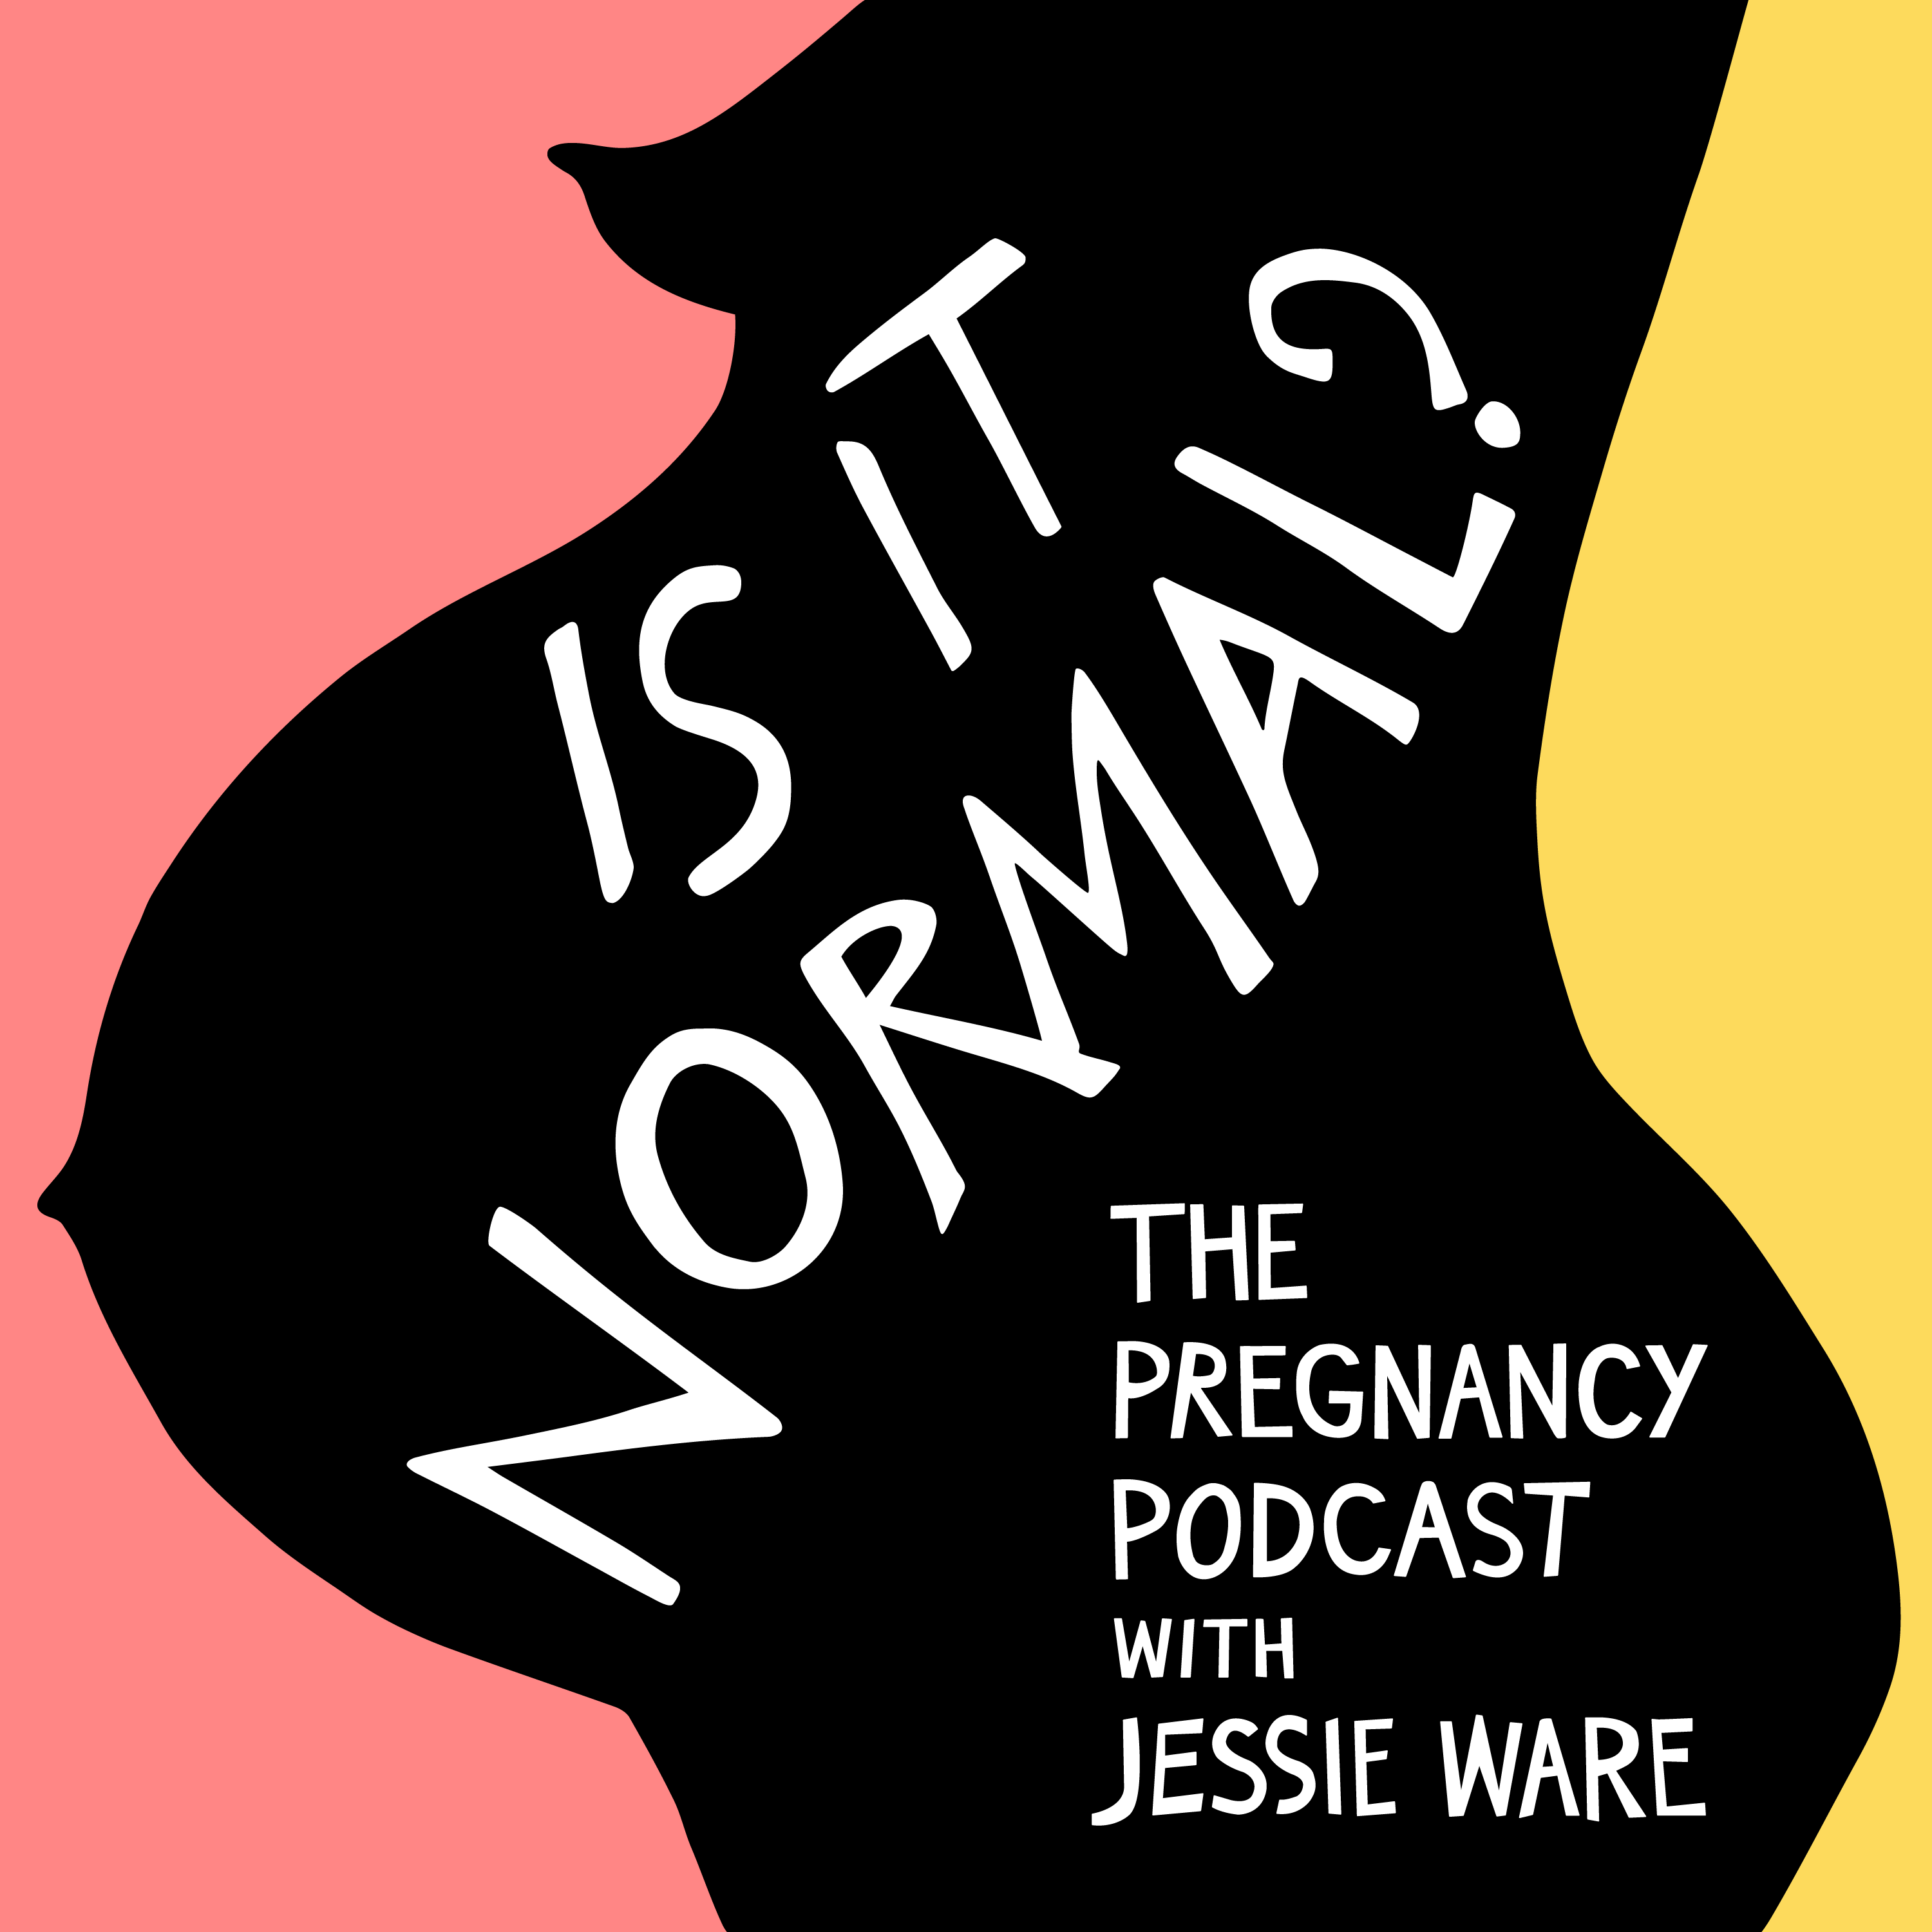 Ep 1 - Weeks 4-6 of your pregnancy